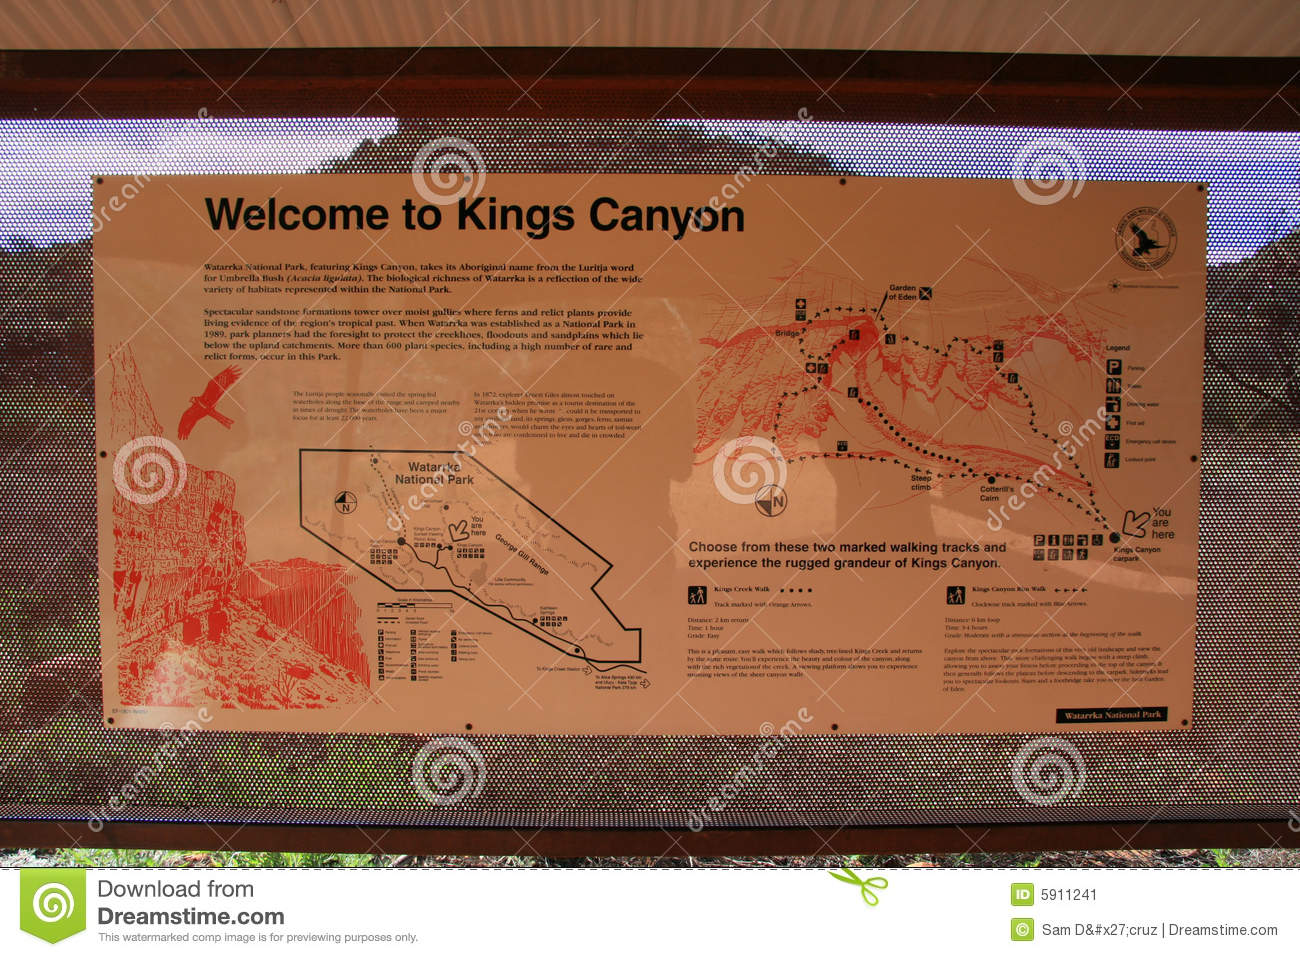 Kings canyon clipart #9